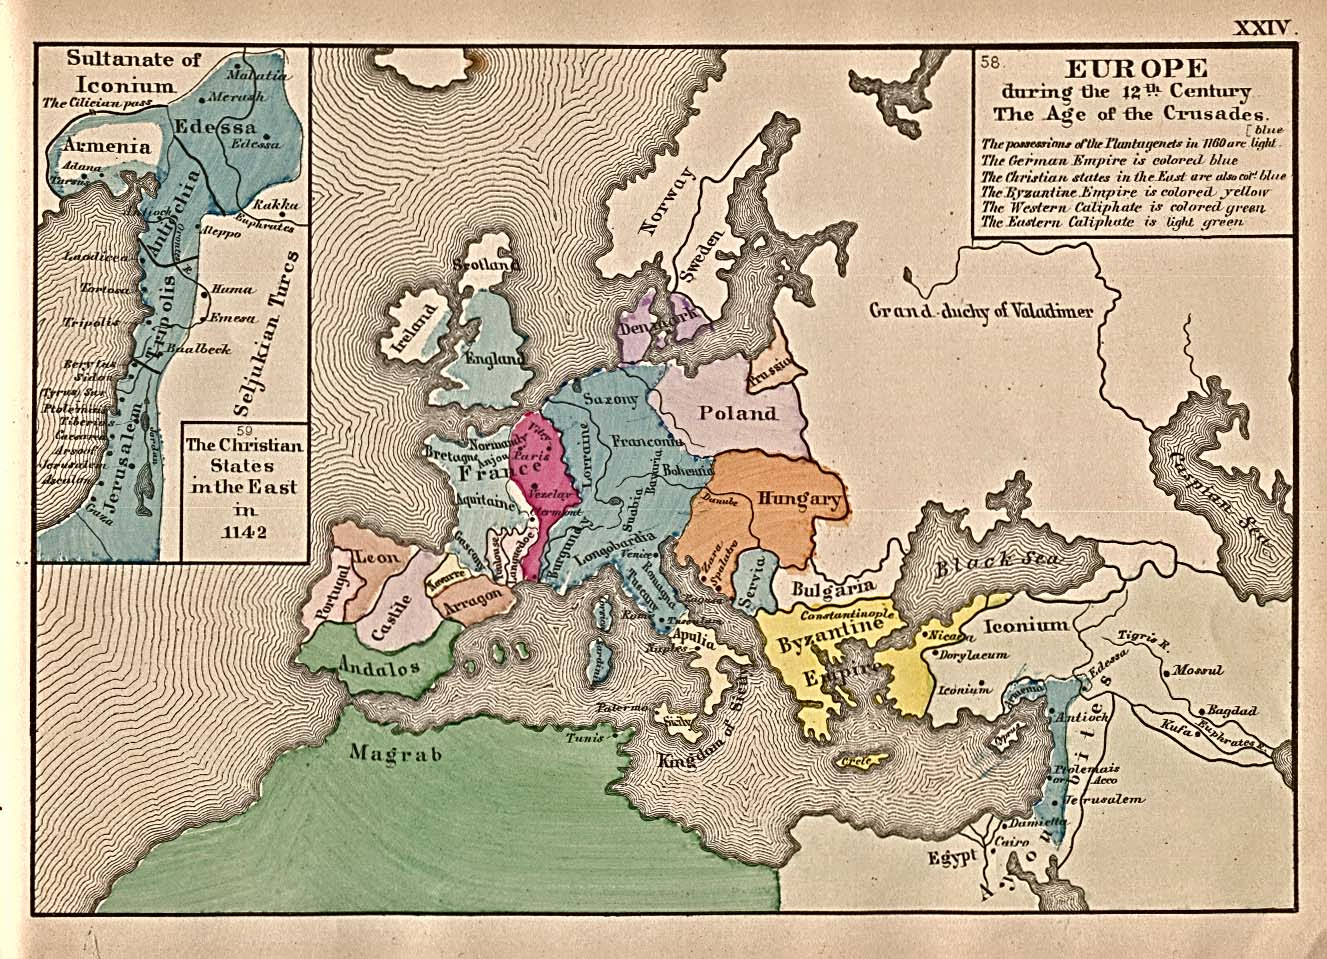 https://www.lib.utexas.edu/maps/historical/europe_12thcentury_1884.jpg